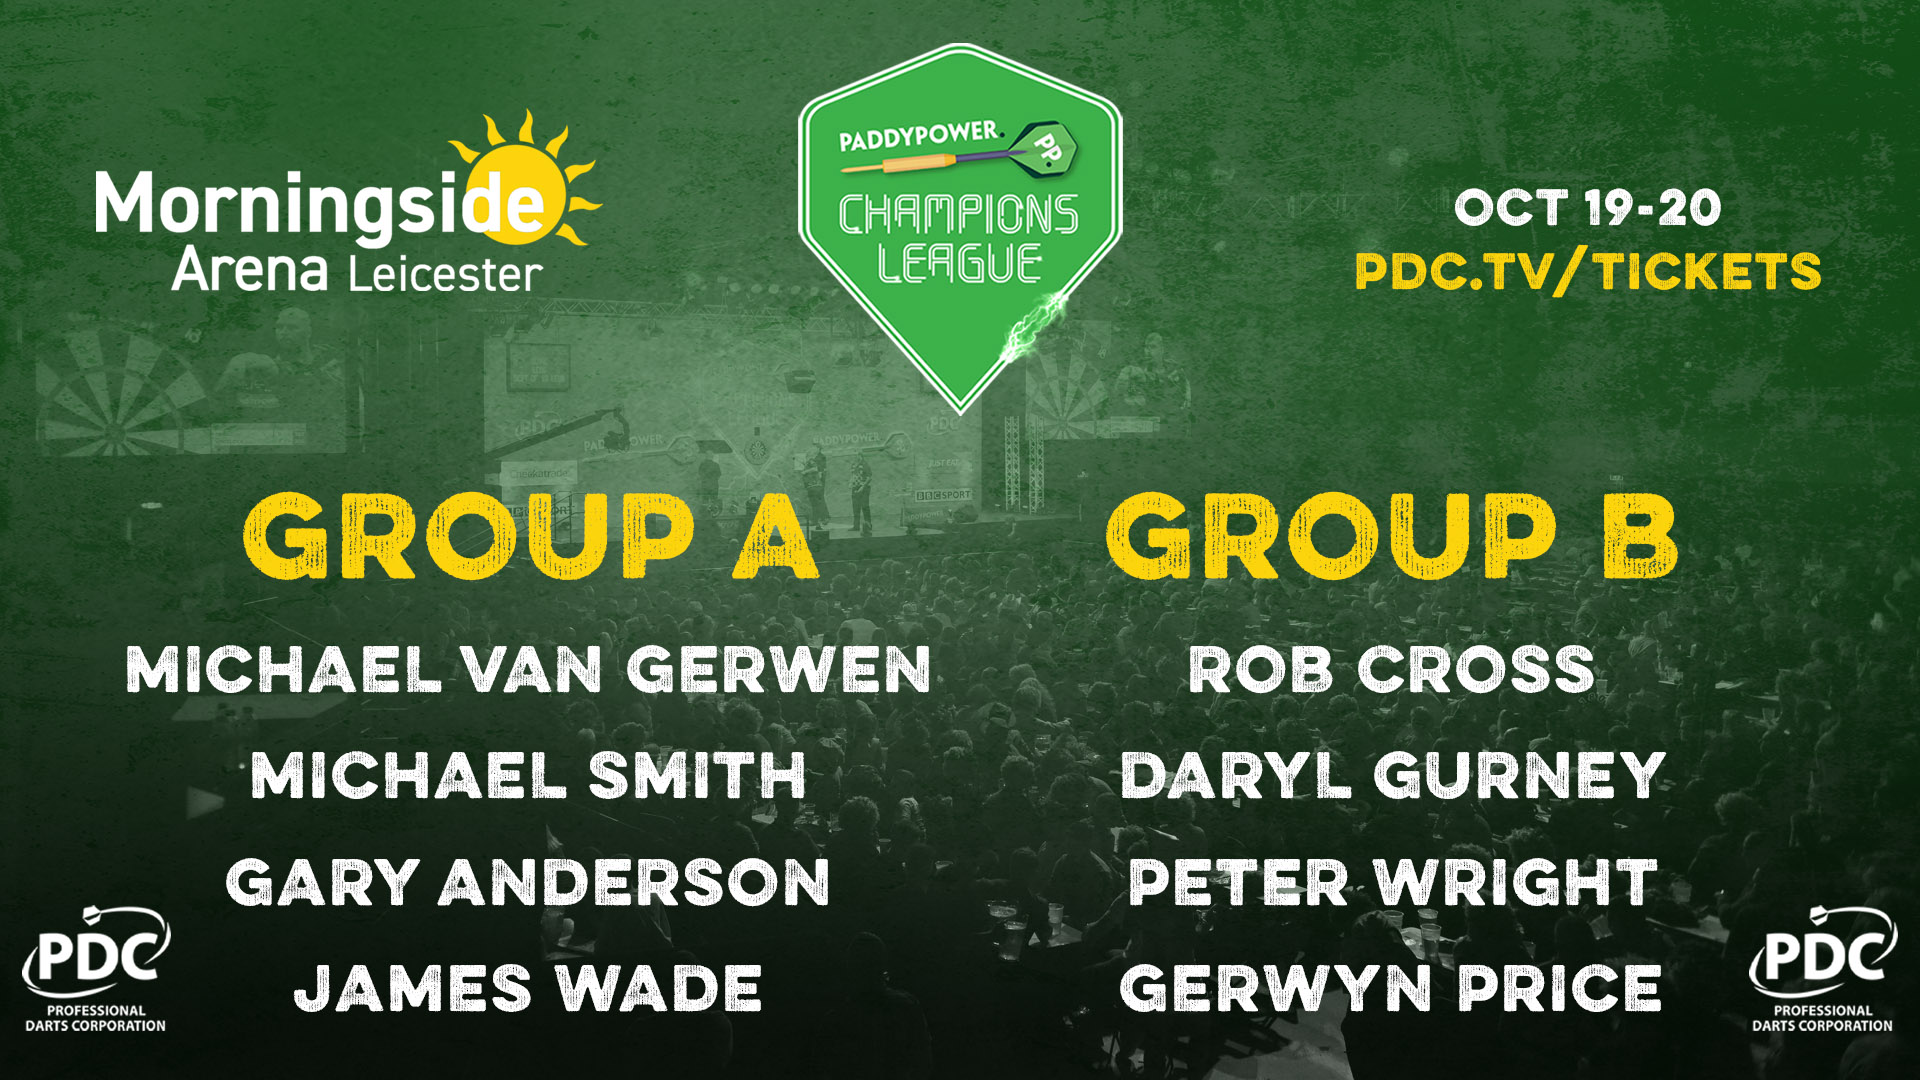 Champions League of Darts groups (PDC)